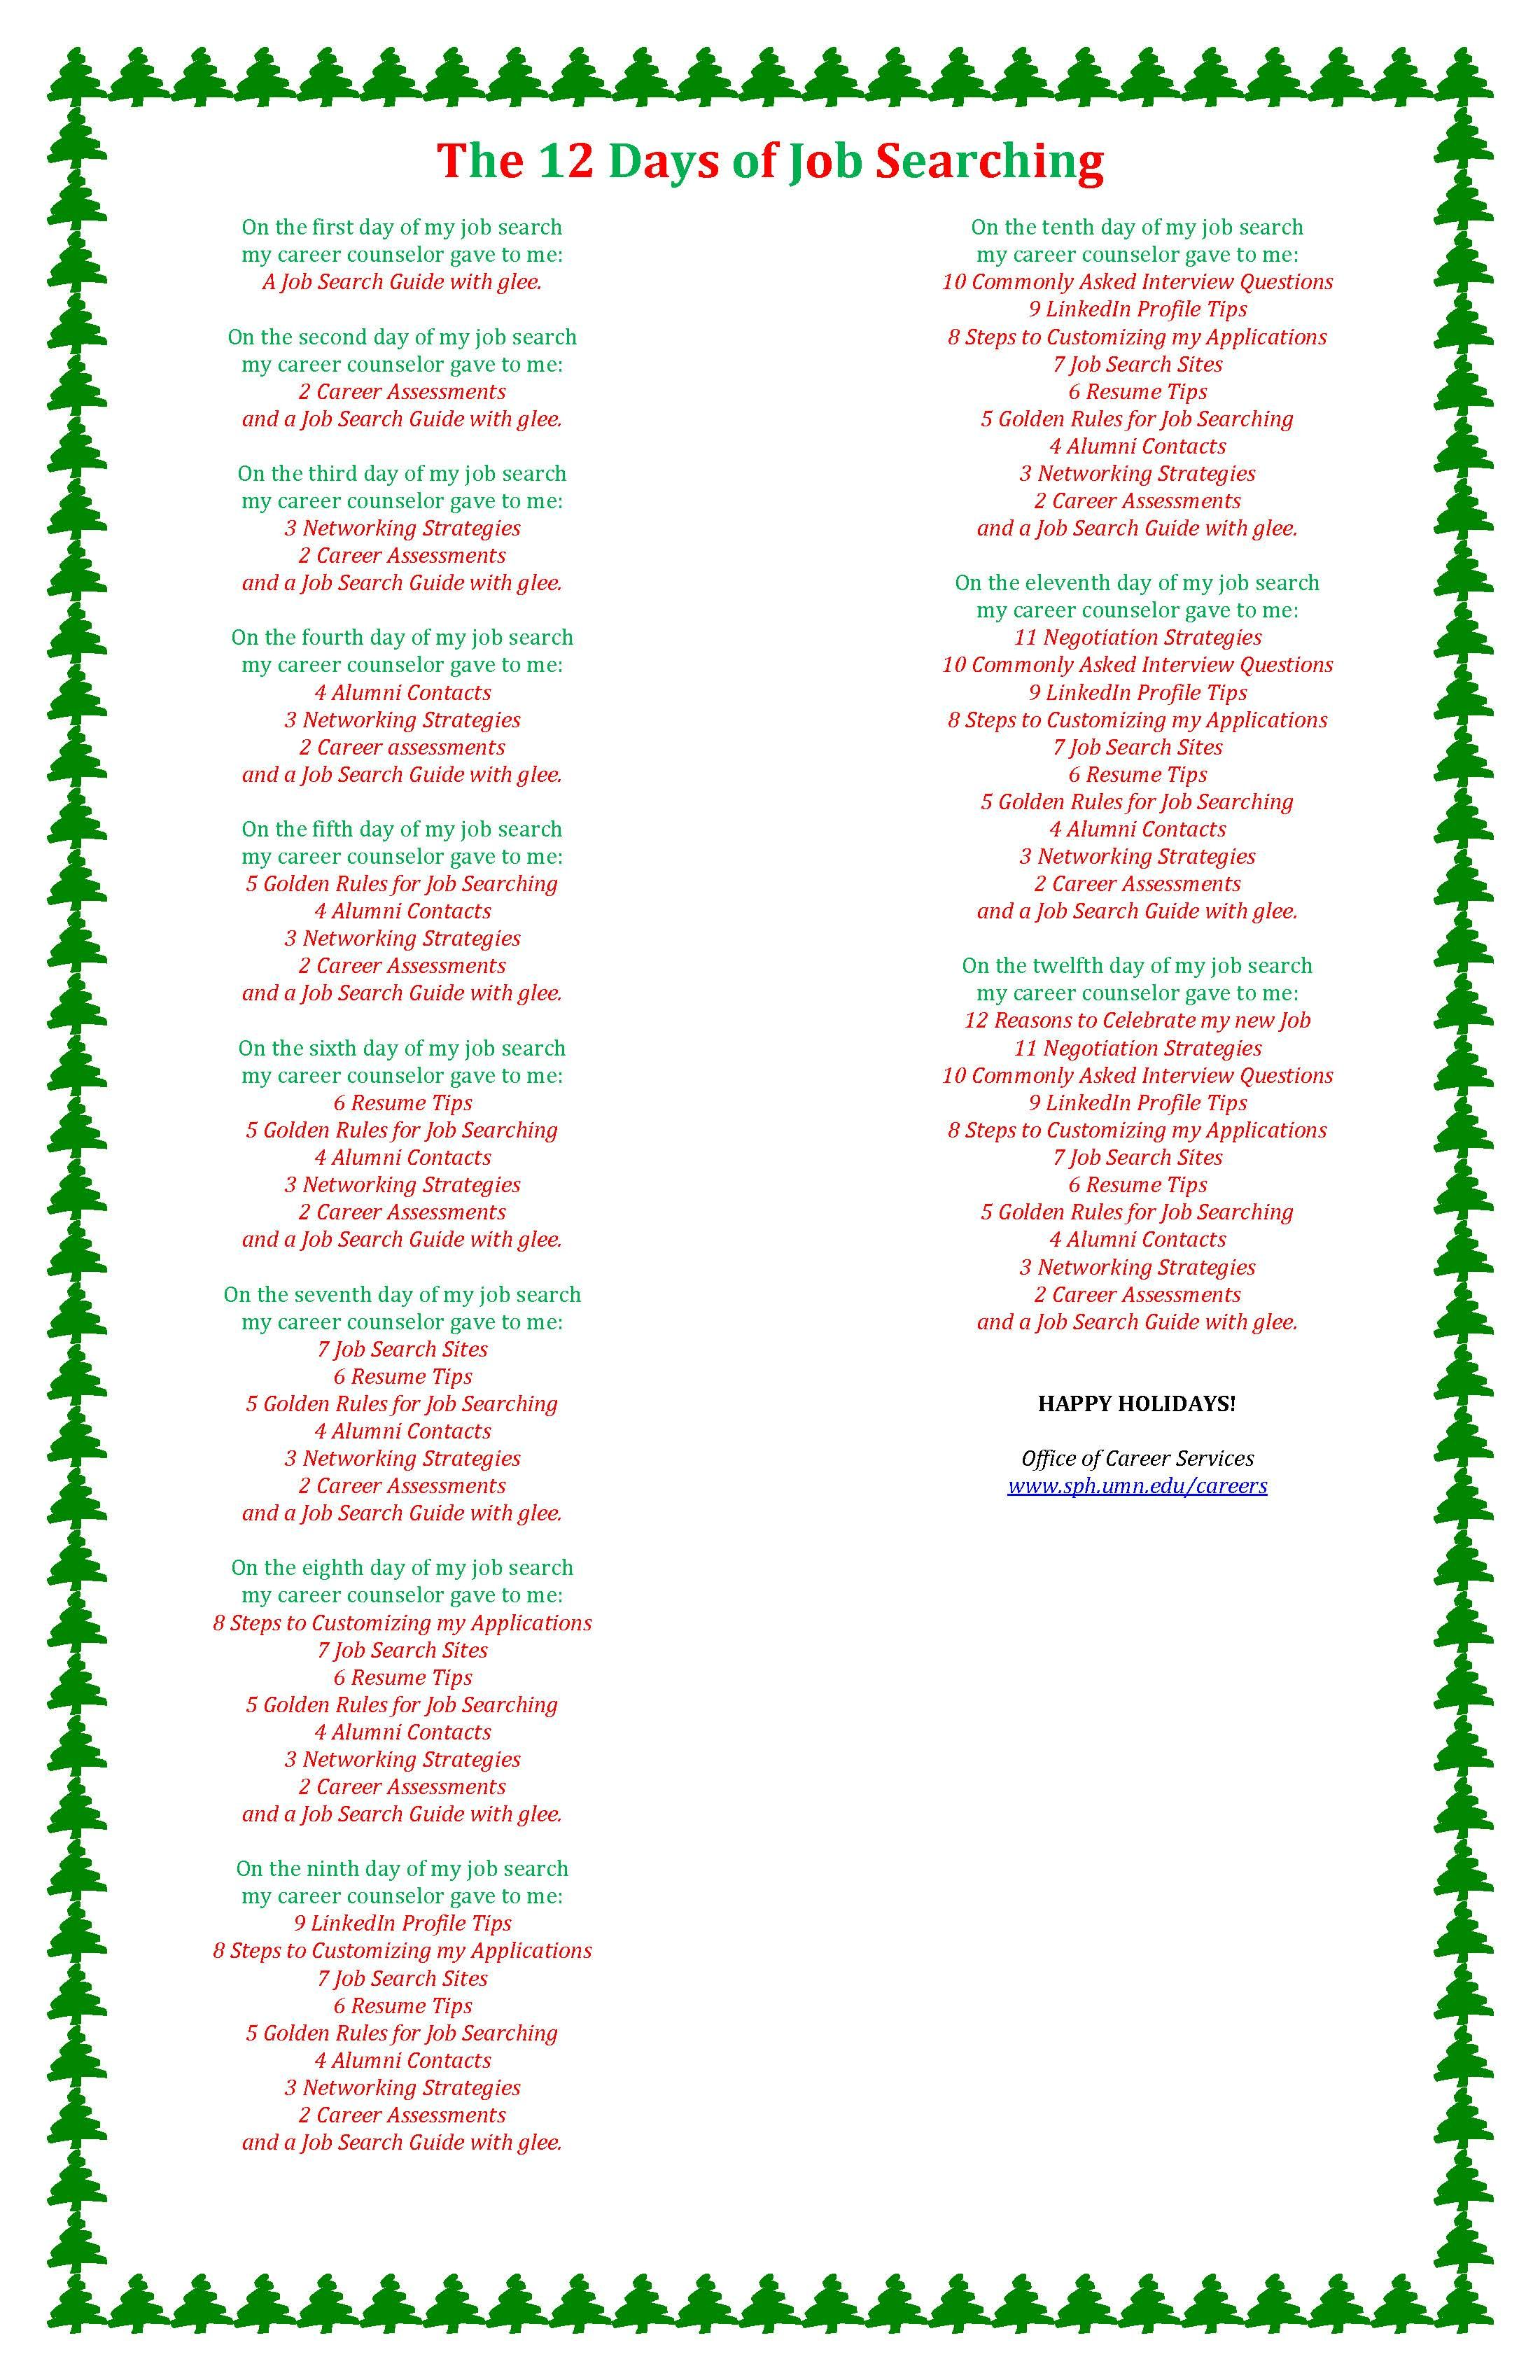 The 12 Days of Job Searching! Happy Holidays! Job search